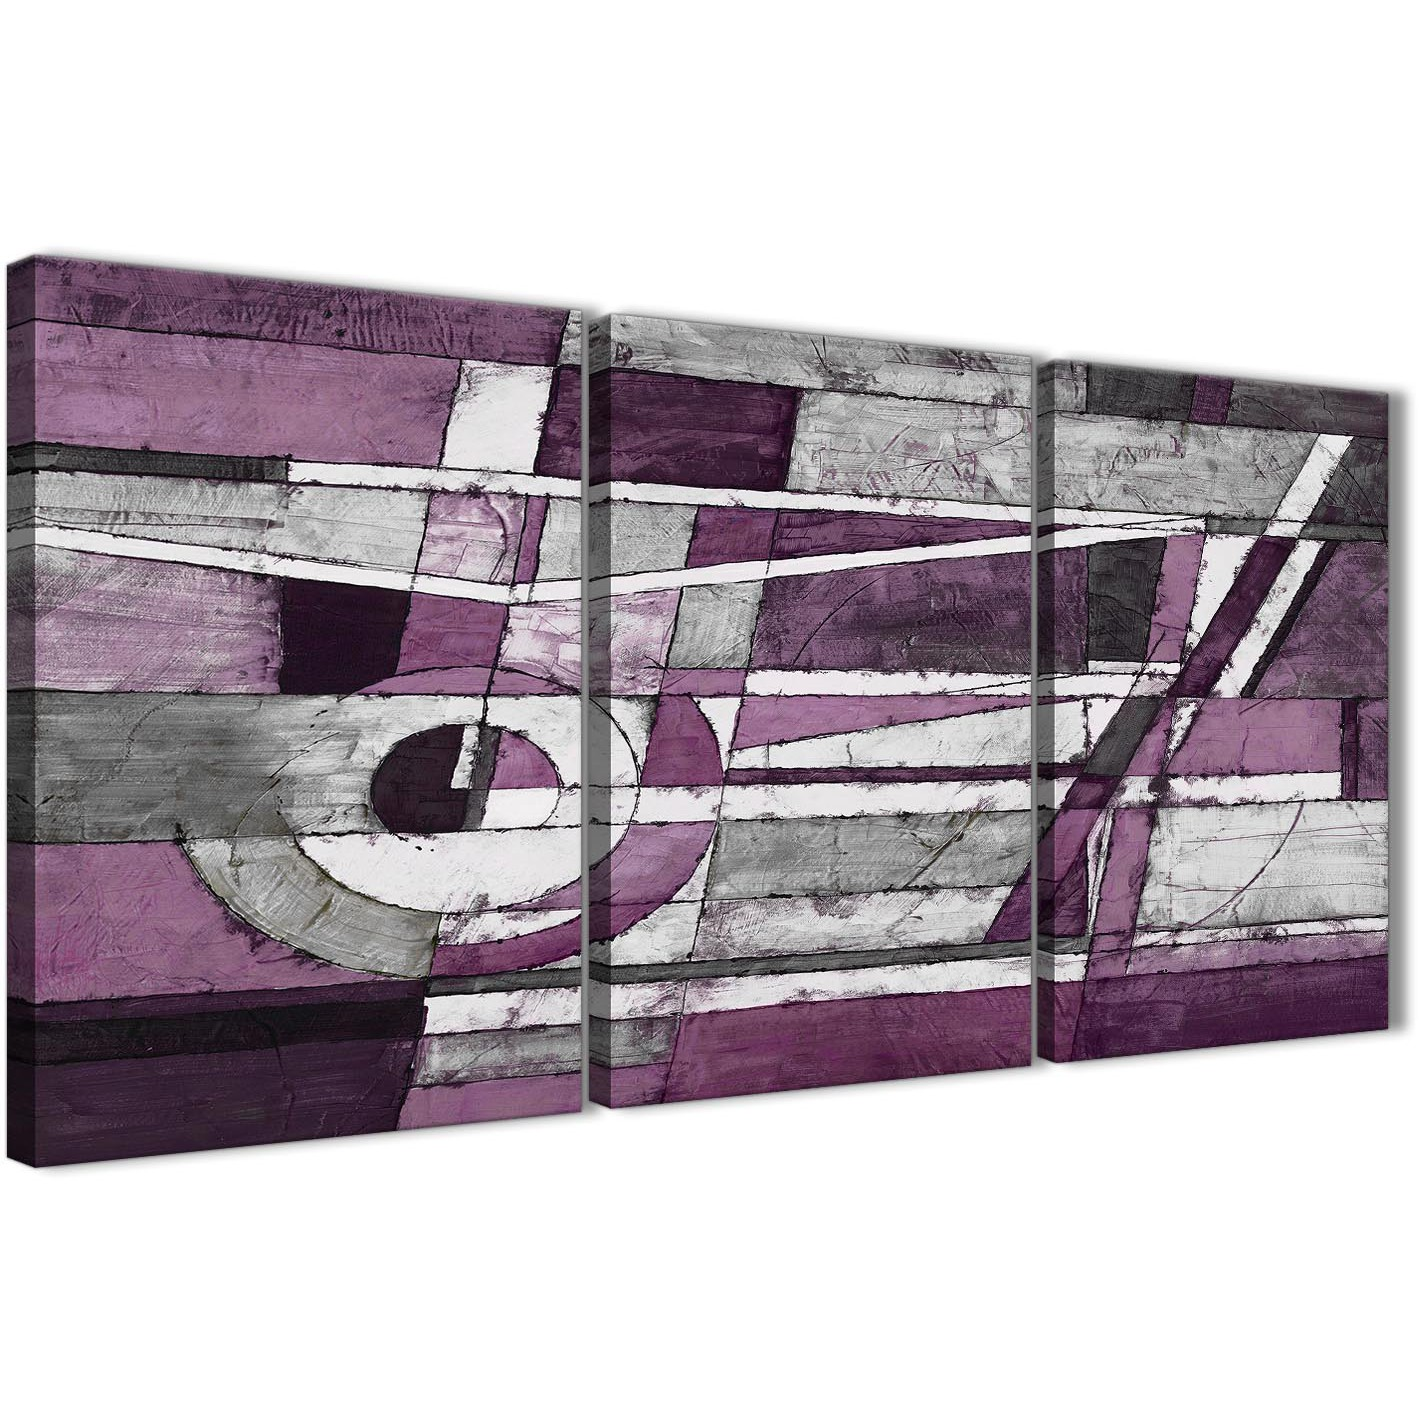 Bedroom Canvas Wall Art Uk: 3 Panel Aubergine Grey White Painting Dining Room Canvas